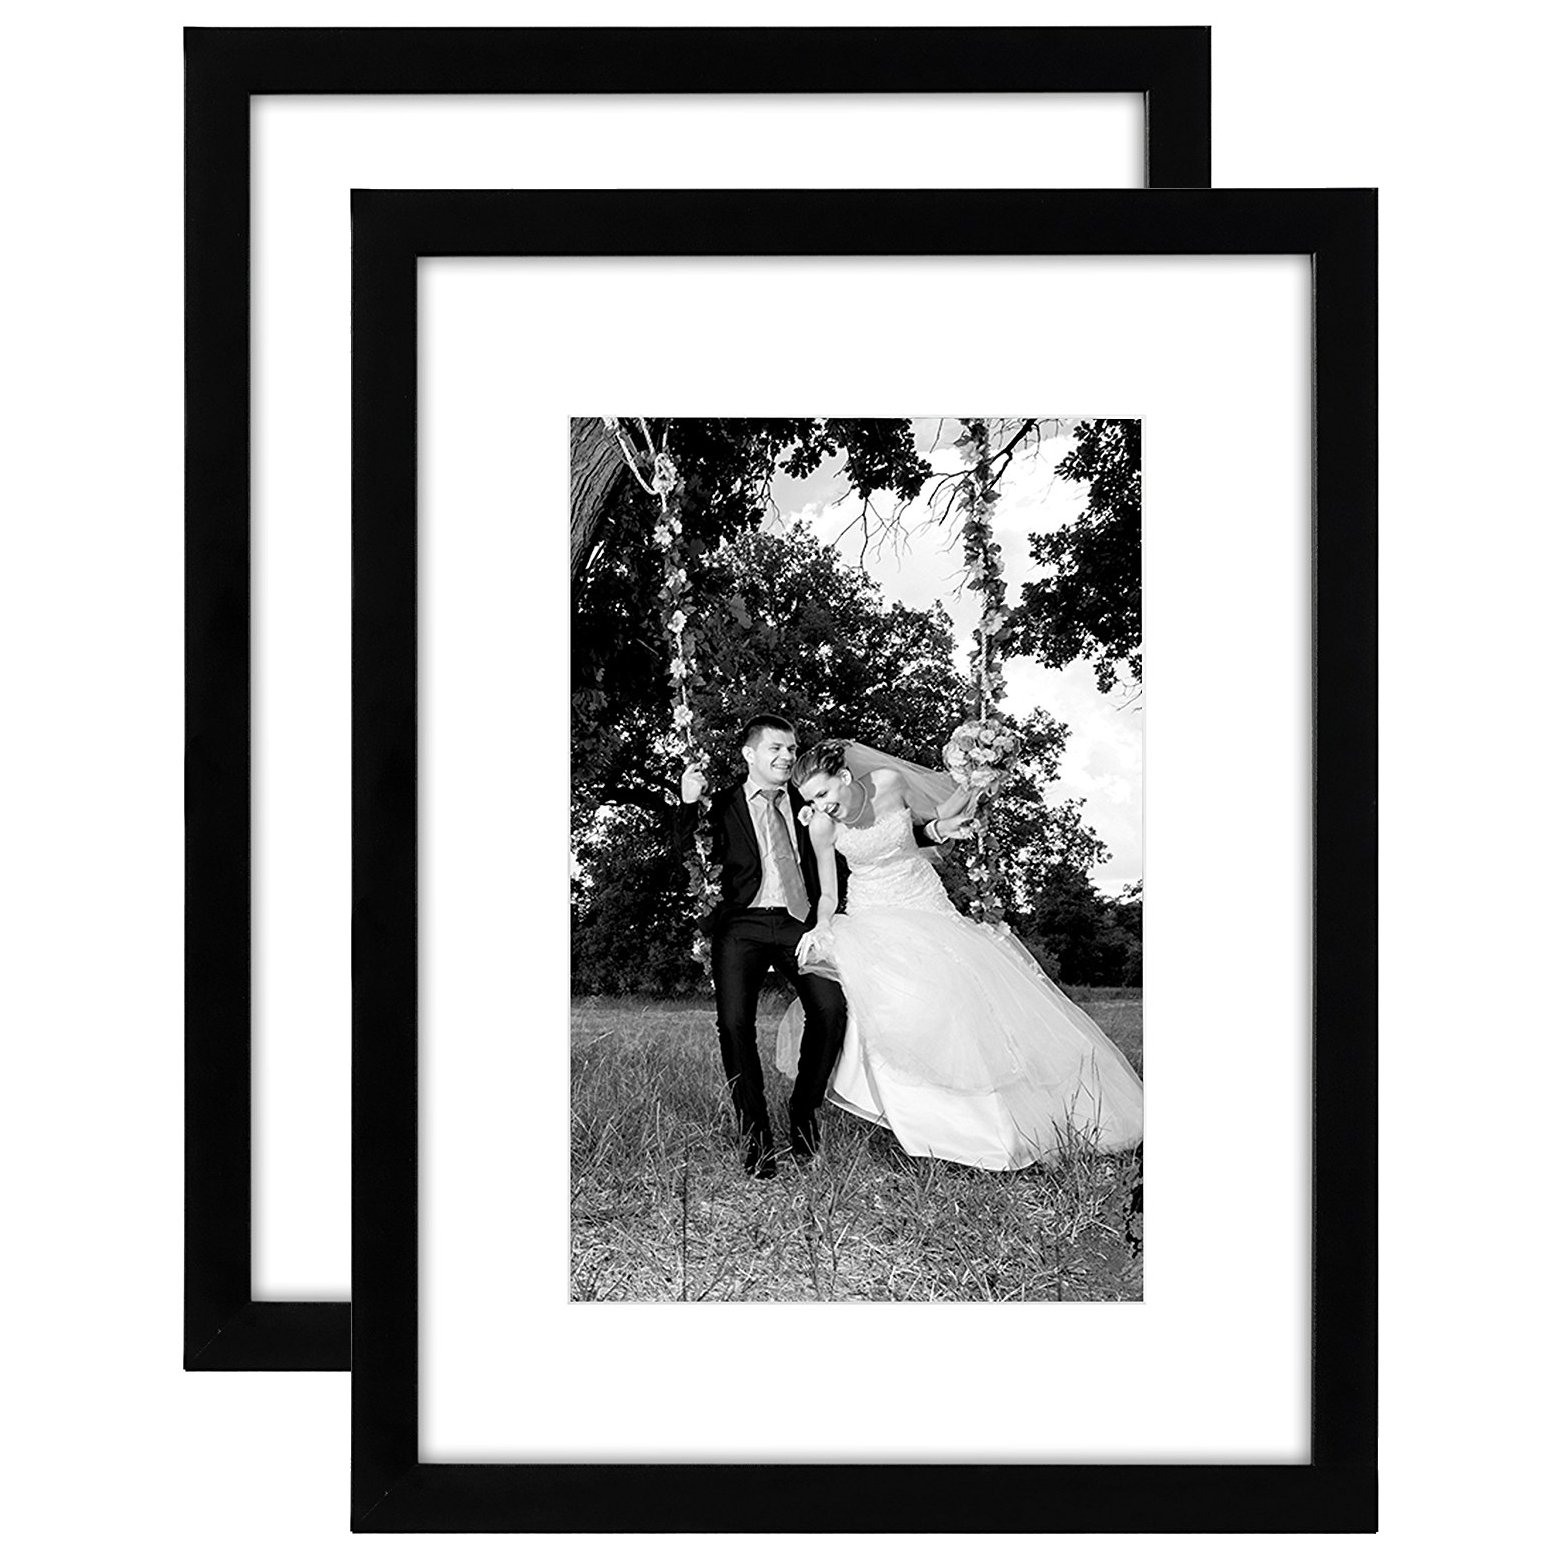 Americanflat 2 Pack - 12x16 Black Picture Frames - Display Pictures 8x12 with Mats - Display Pictures 12x16 Without Mats - Glass Fronts - Hanging Hardware Included by Americanflat